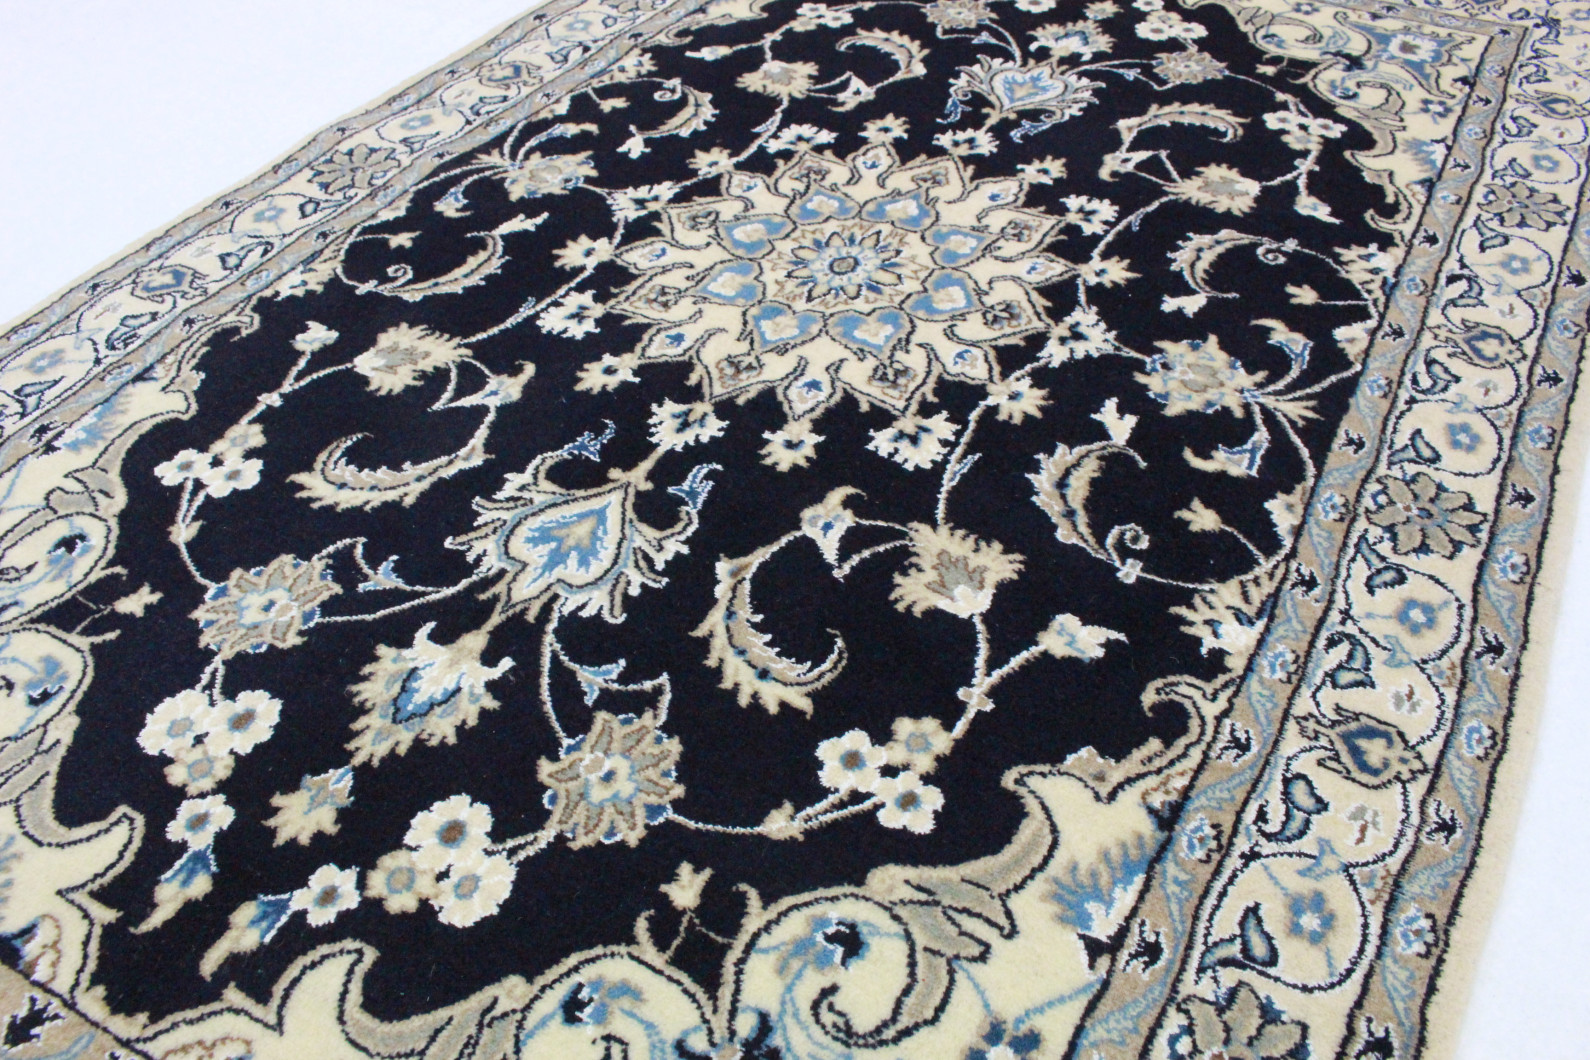 nain teppich beige blau in 200x120 5120 22032 bei kaufen. Black Bedroom Furniture Sets. Home Design Ideas